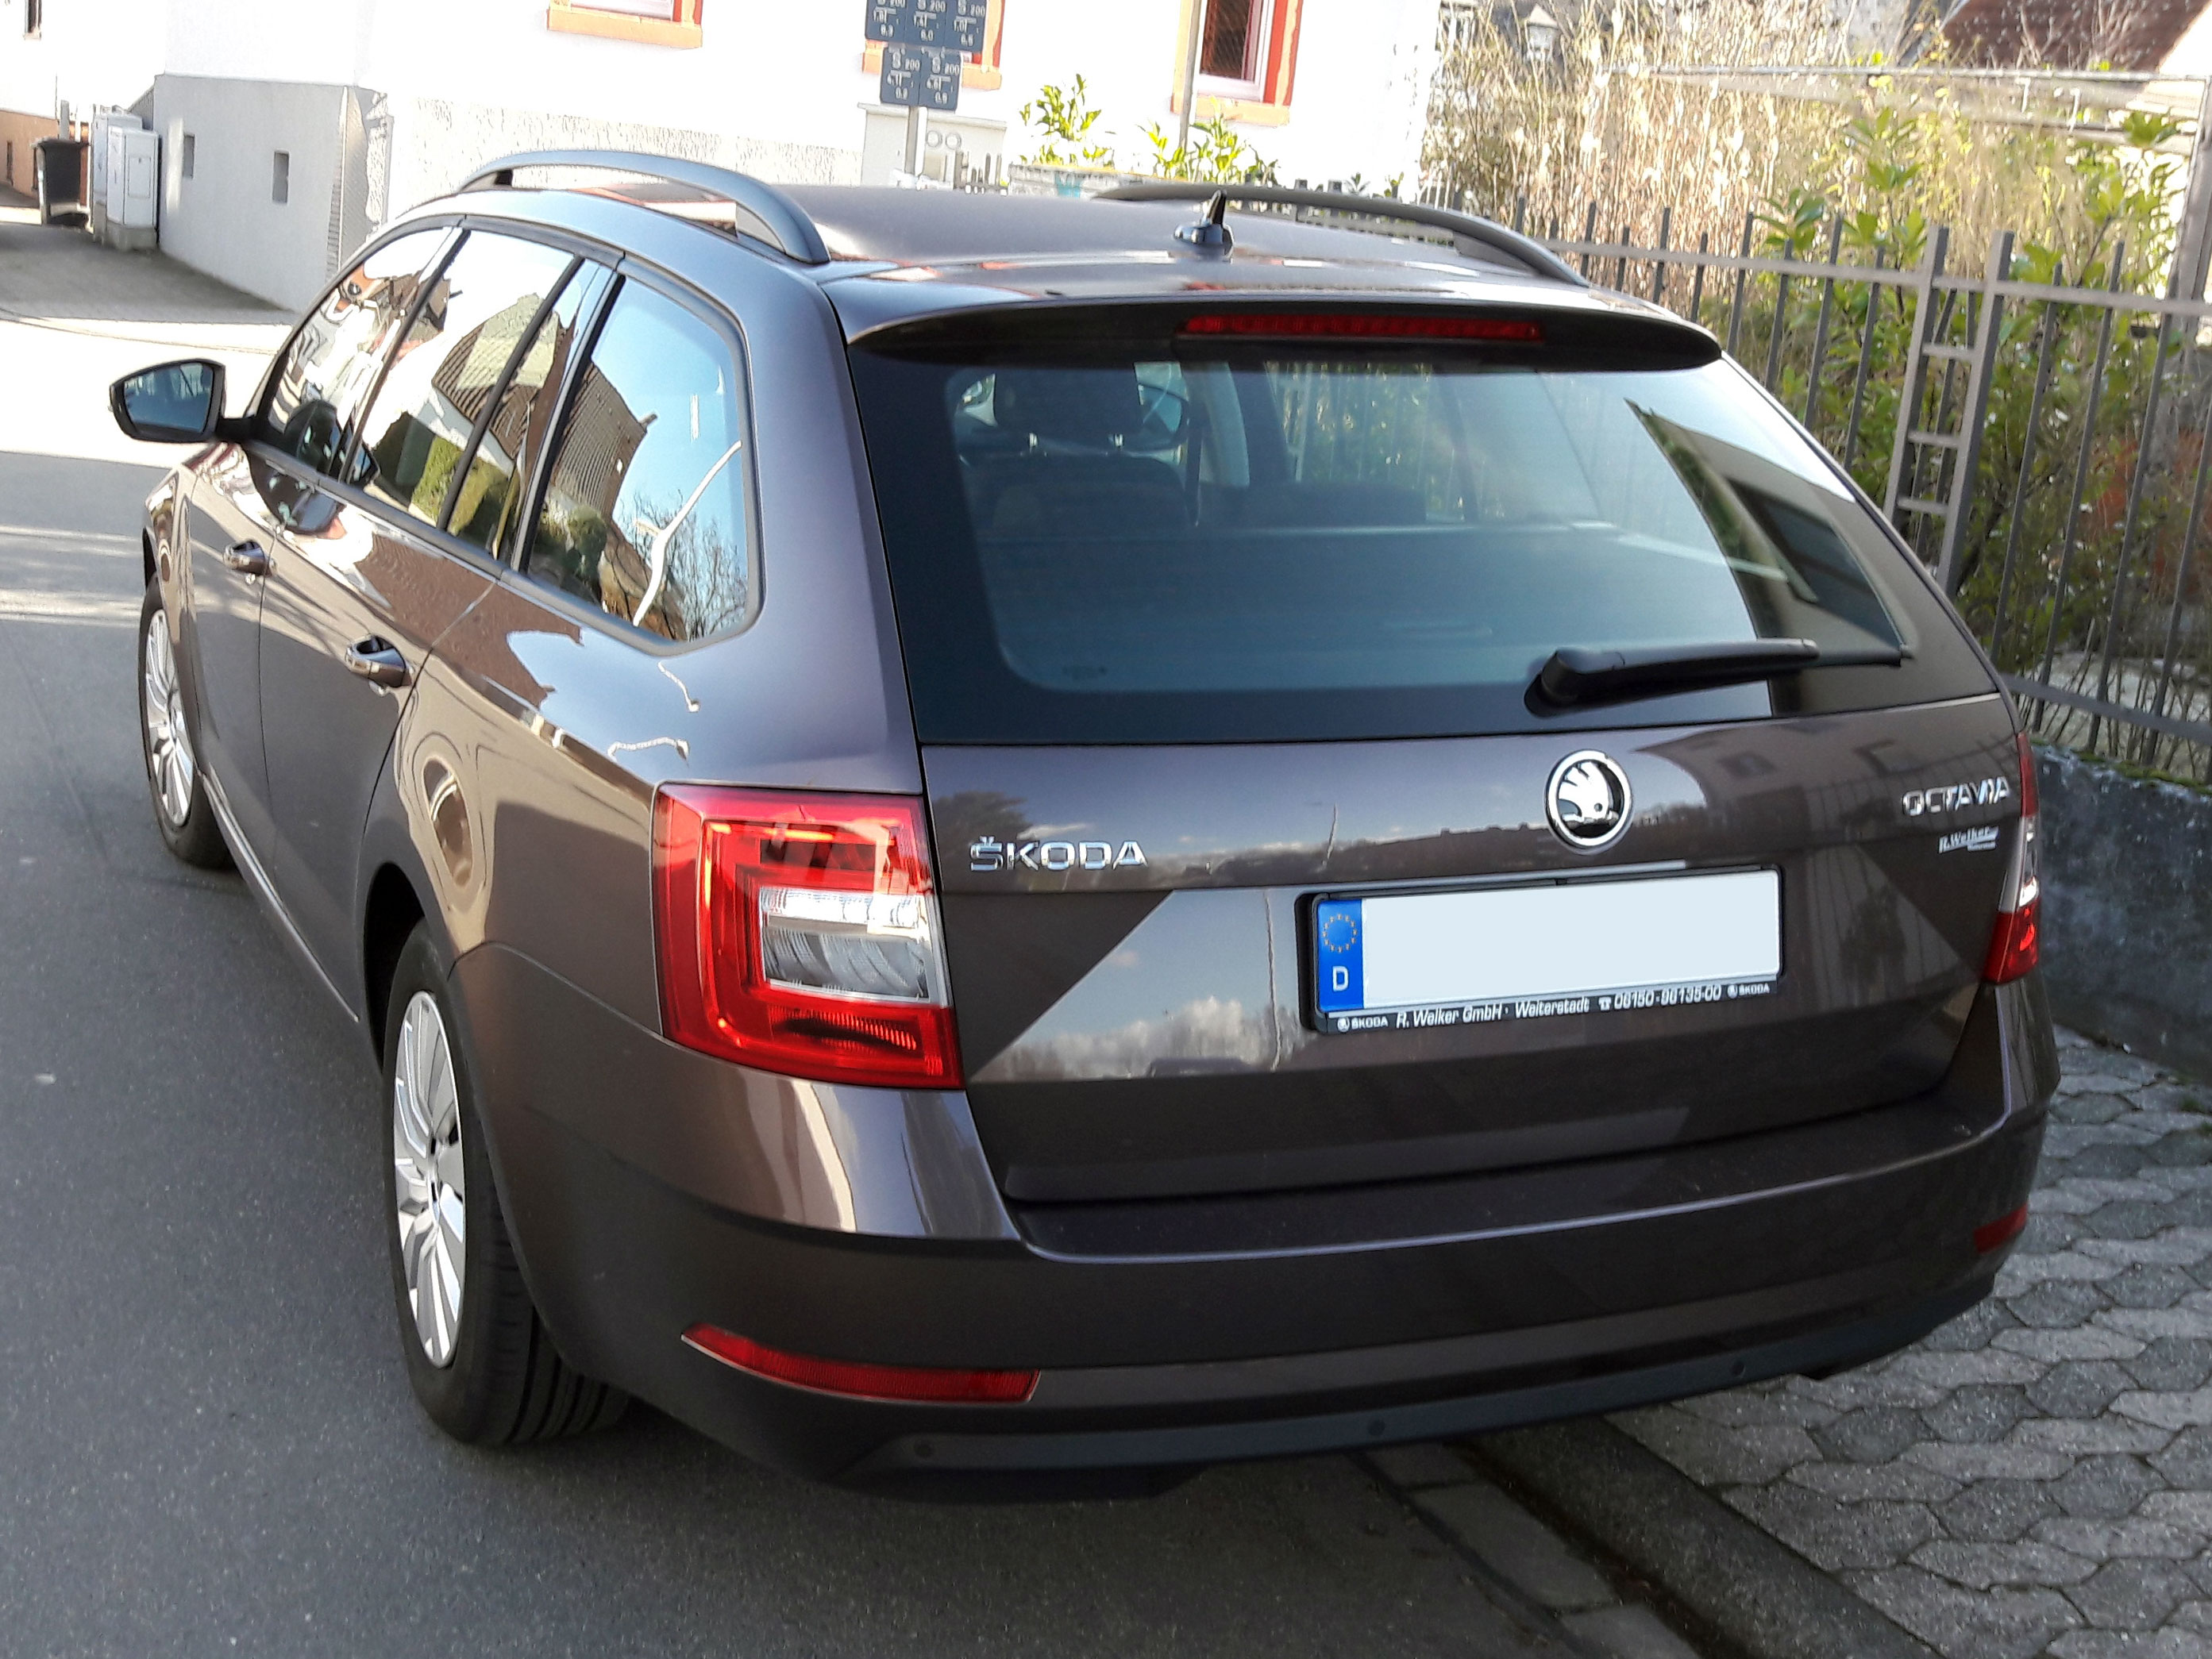 file skoda octavia iii facelift wikipedia. Black Bedroom Furniture Sets. Home Design Ideas